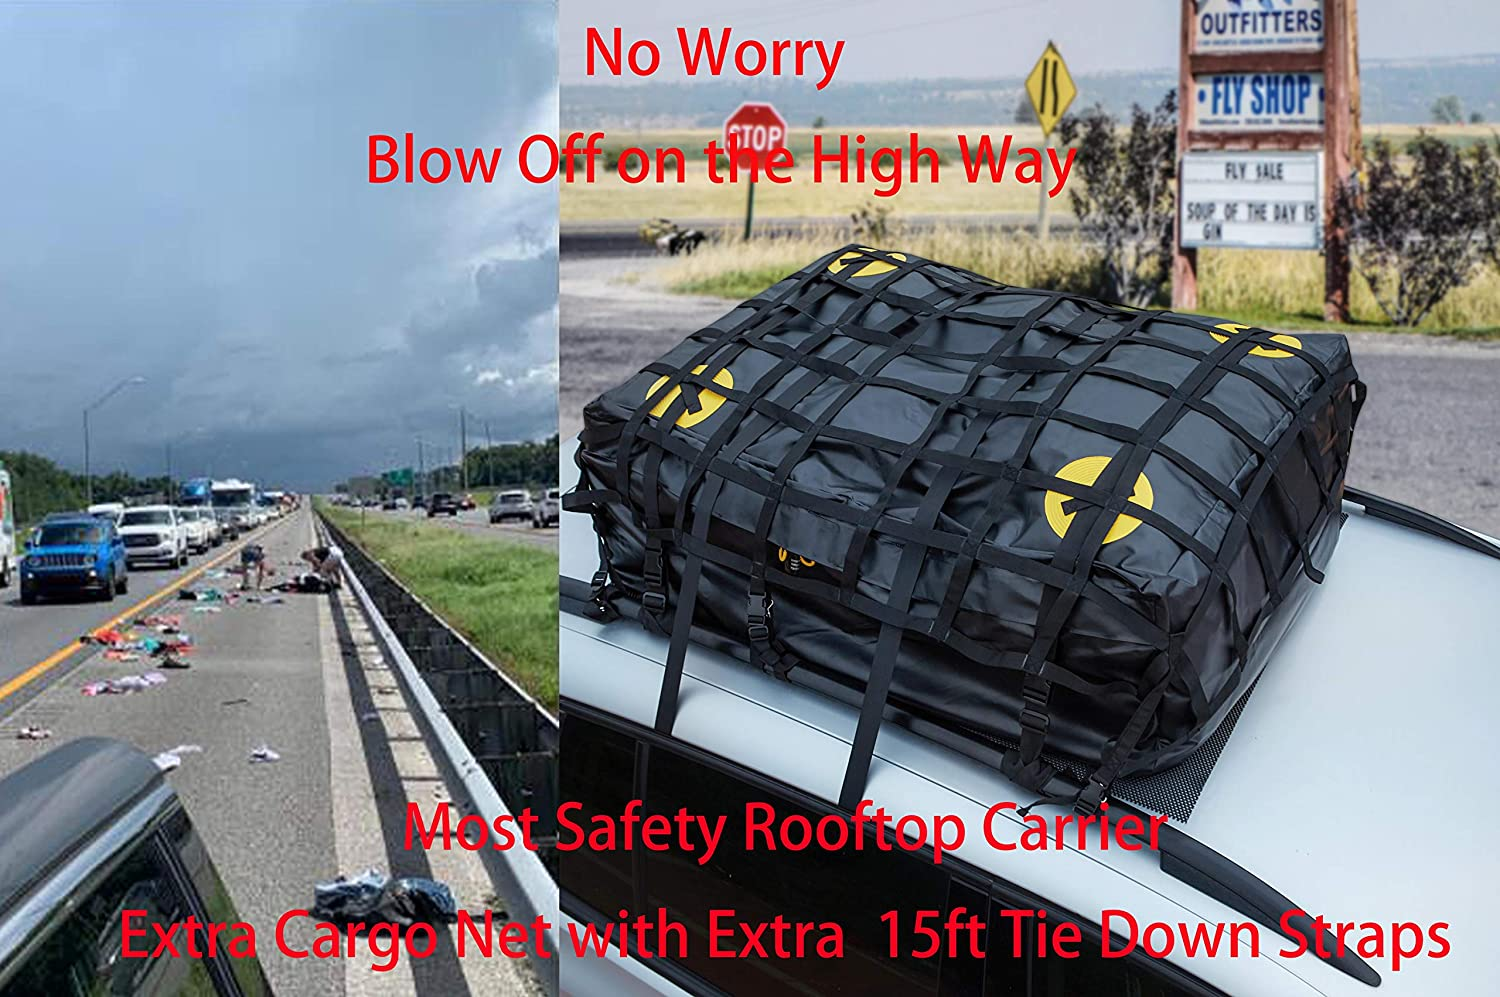 Alfa Gear Waterproof Most Secure No Blow Off Car Roof Bag Cargo Bag Car Roof Top Carrier Soft-Shell Carriers with Extra Tie Down Straps,Anti-Slip mats,Safety Lock,Cargo Net 15 Cu.ft Capacity Black